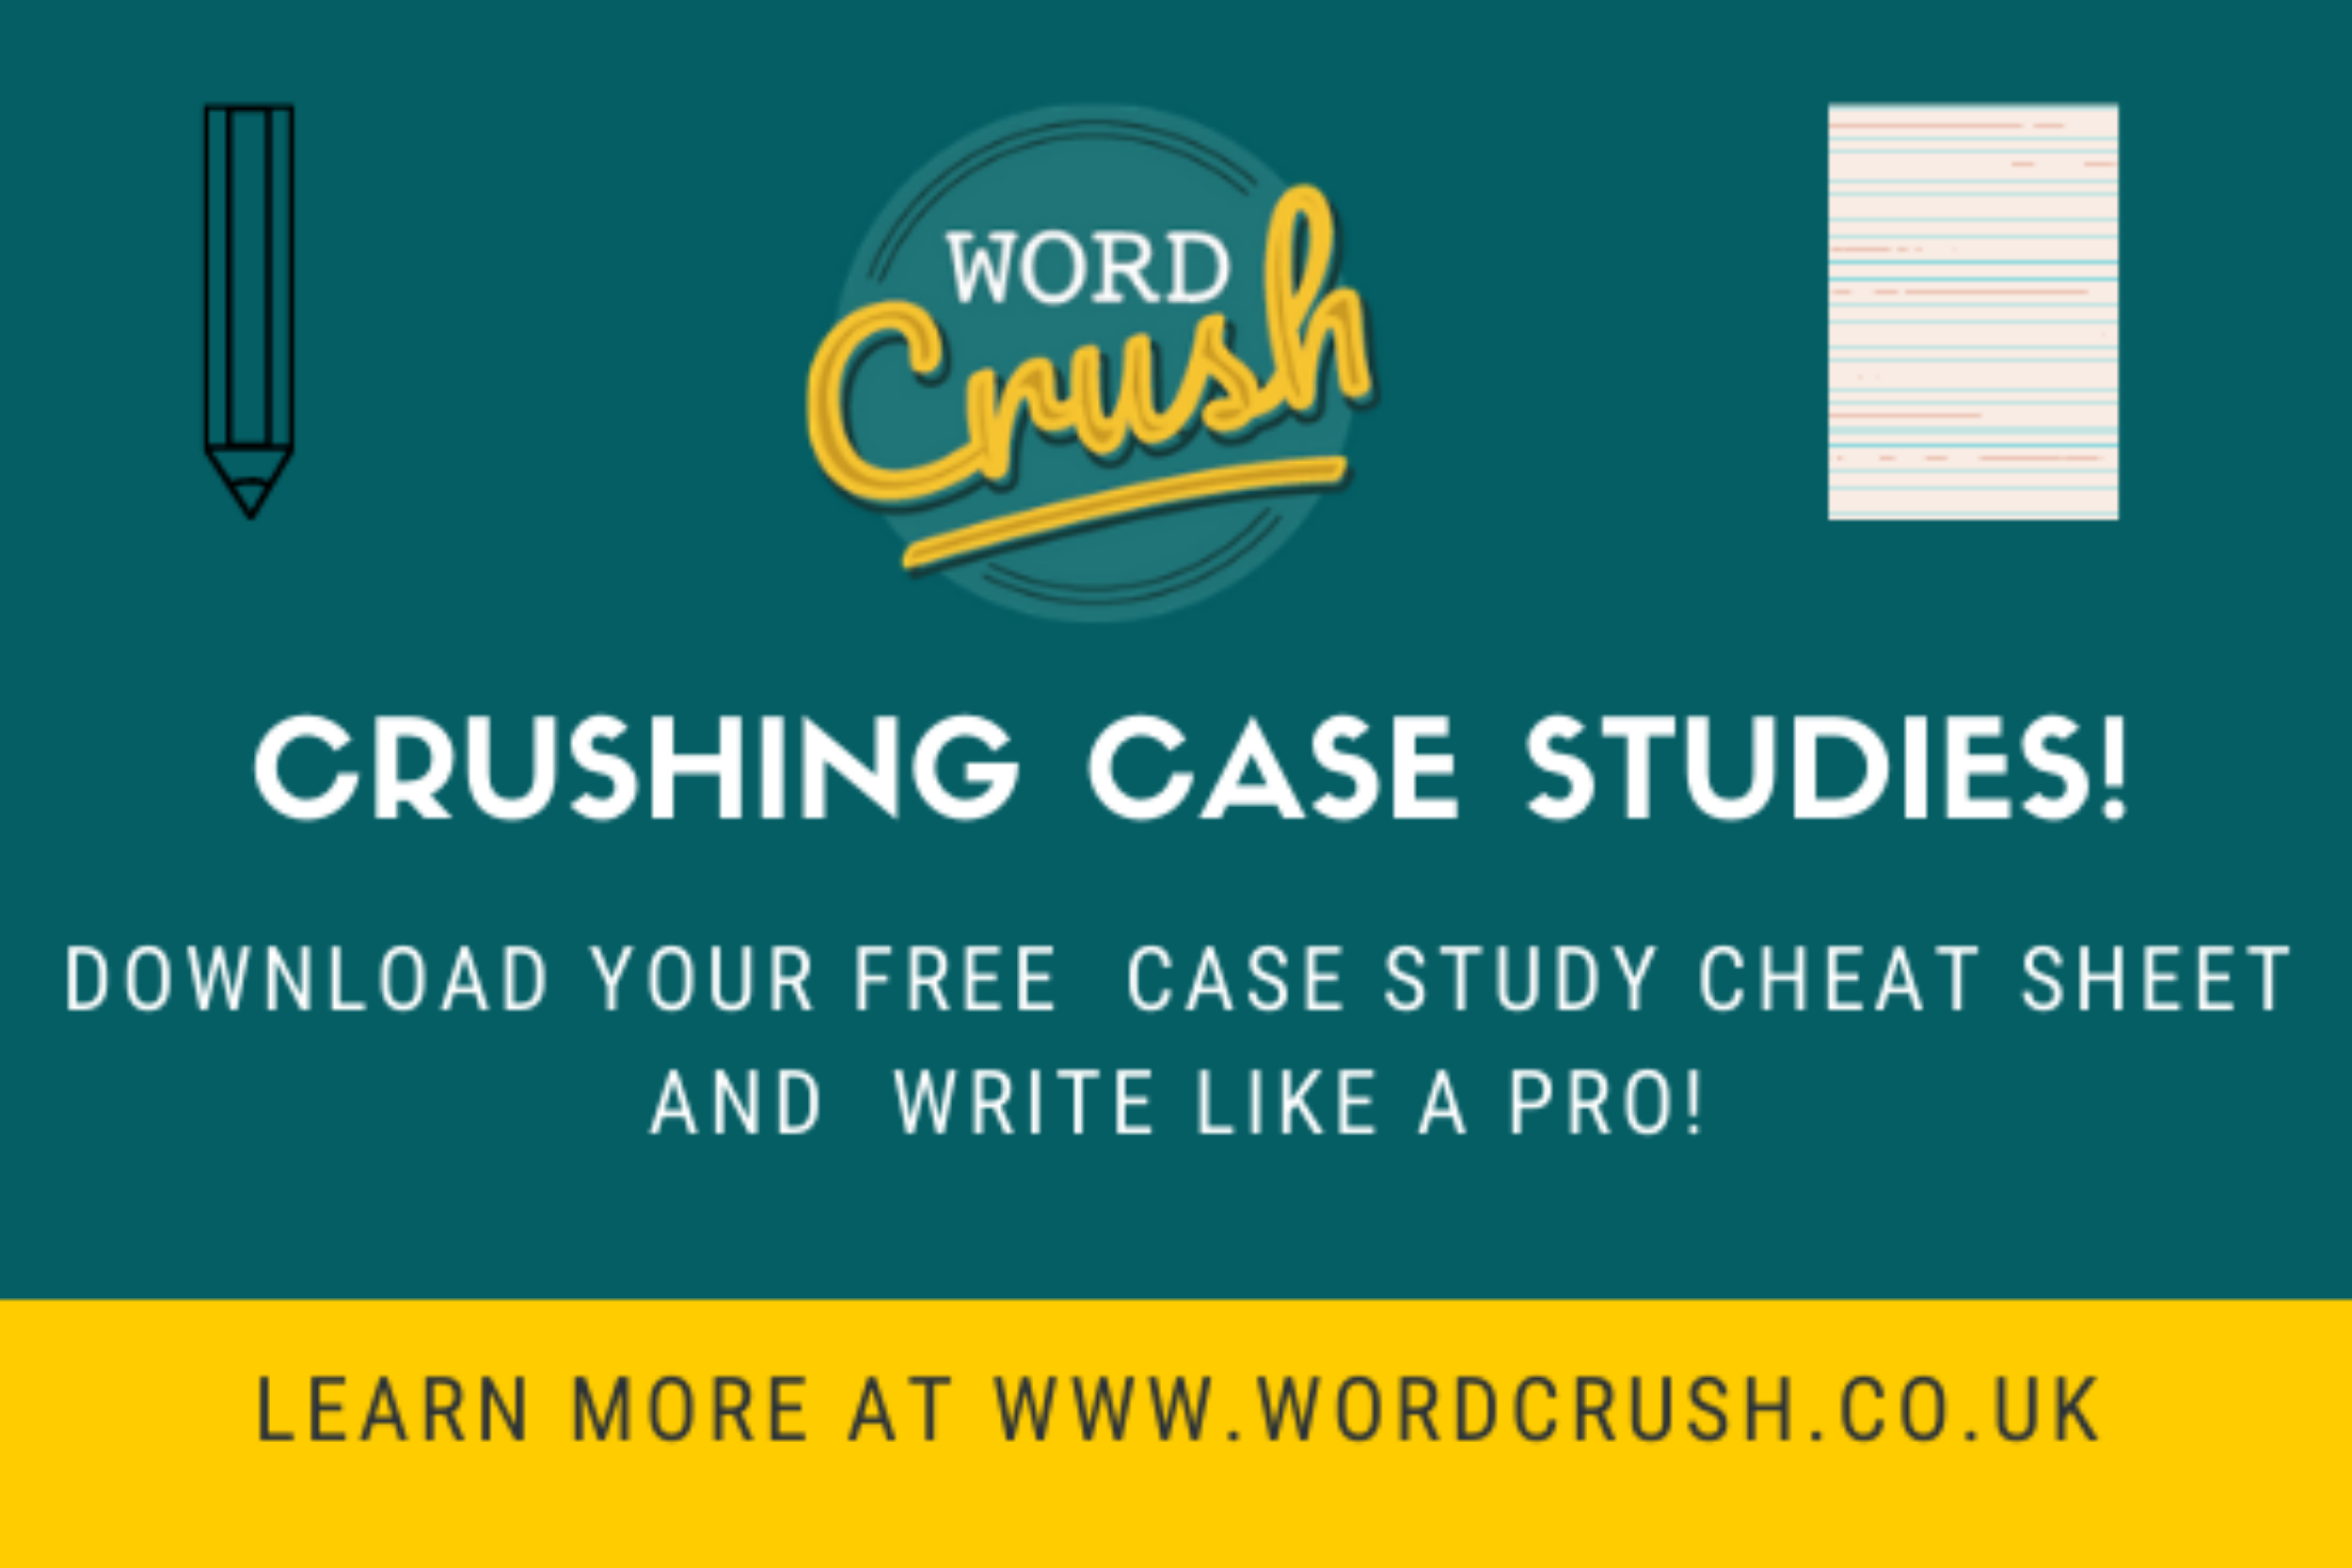 Download your free how to write case studies cheat sheet!